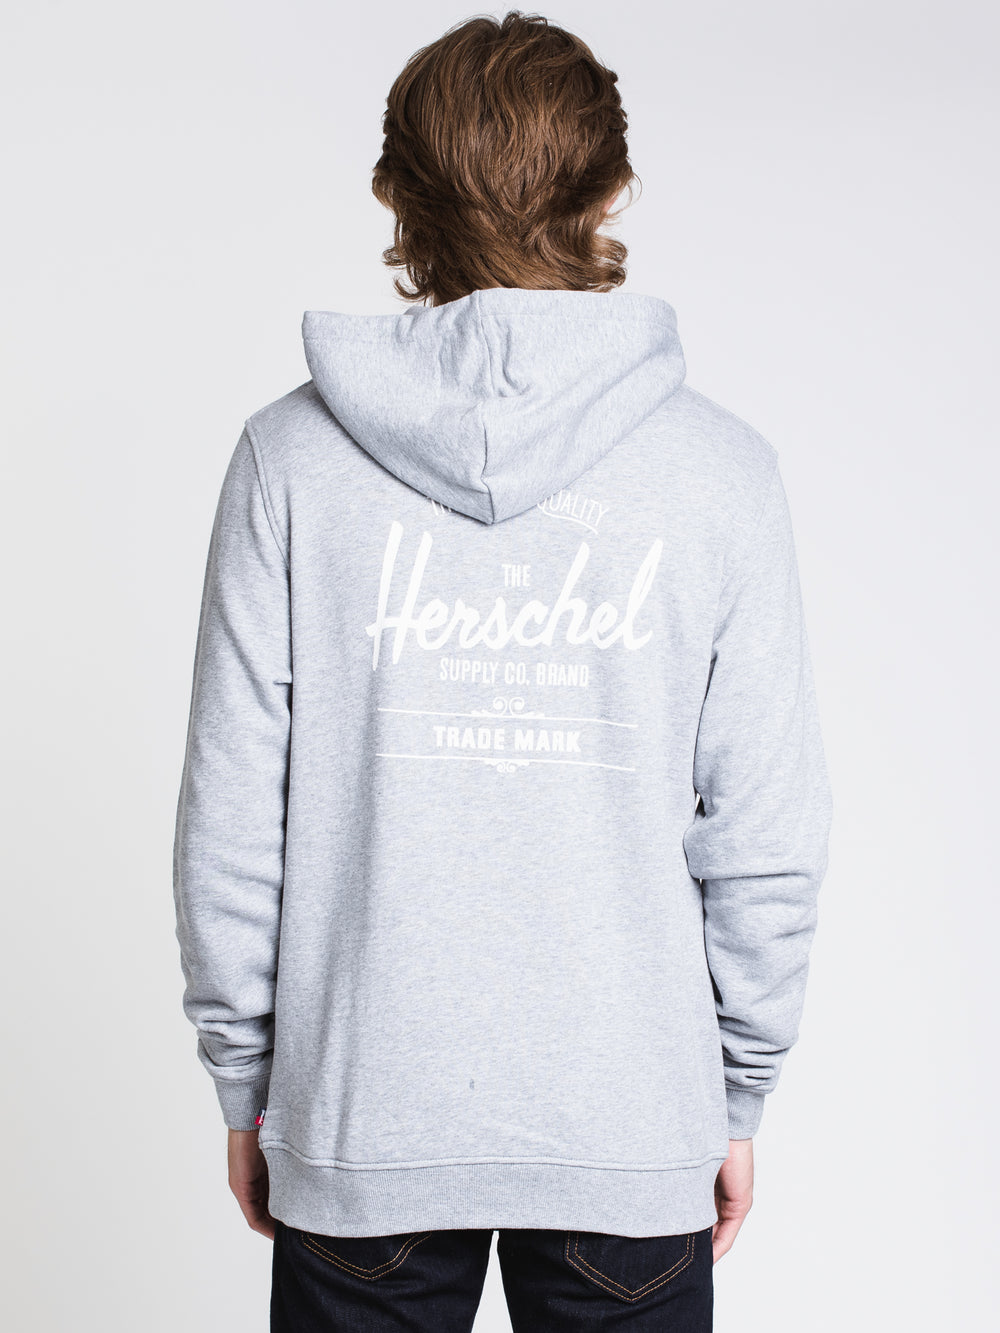 MENS CLASSIC LOGO PULLOVER HOODIE- GREY